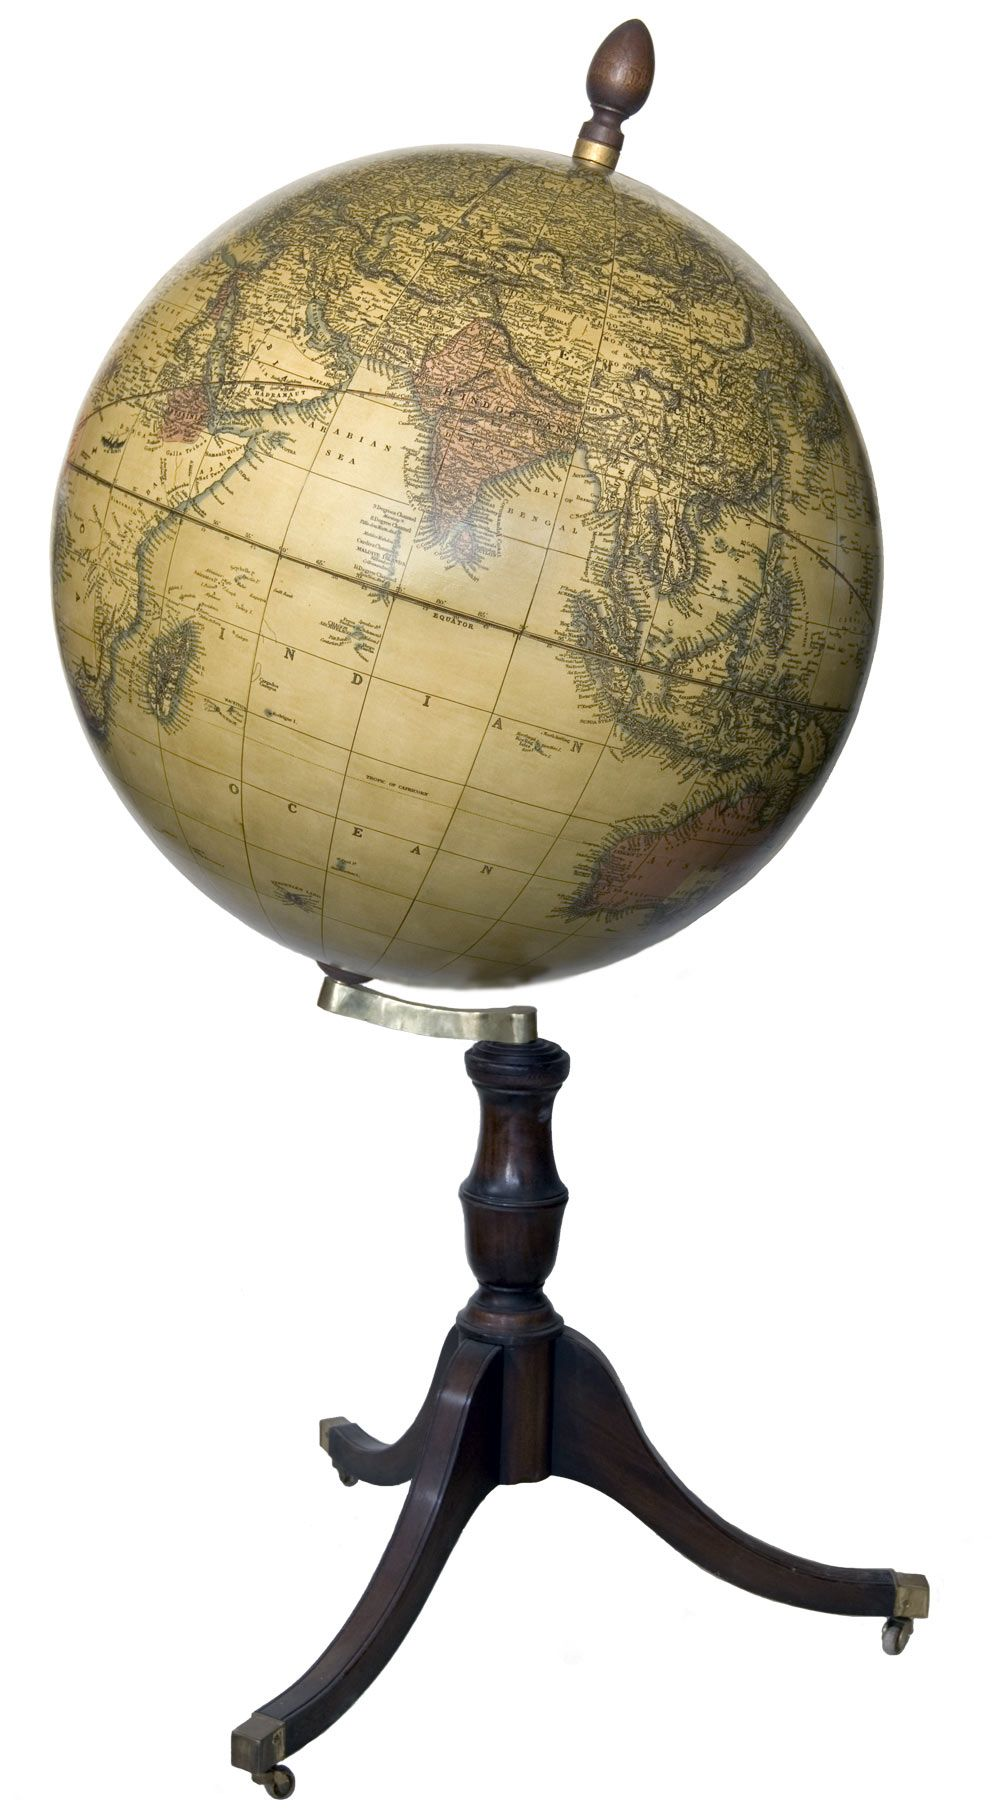 The Lobby 33 Antique Ocean Floor Globe Globes Maps And